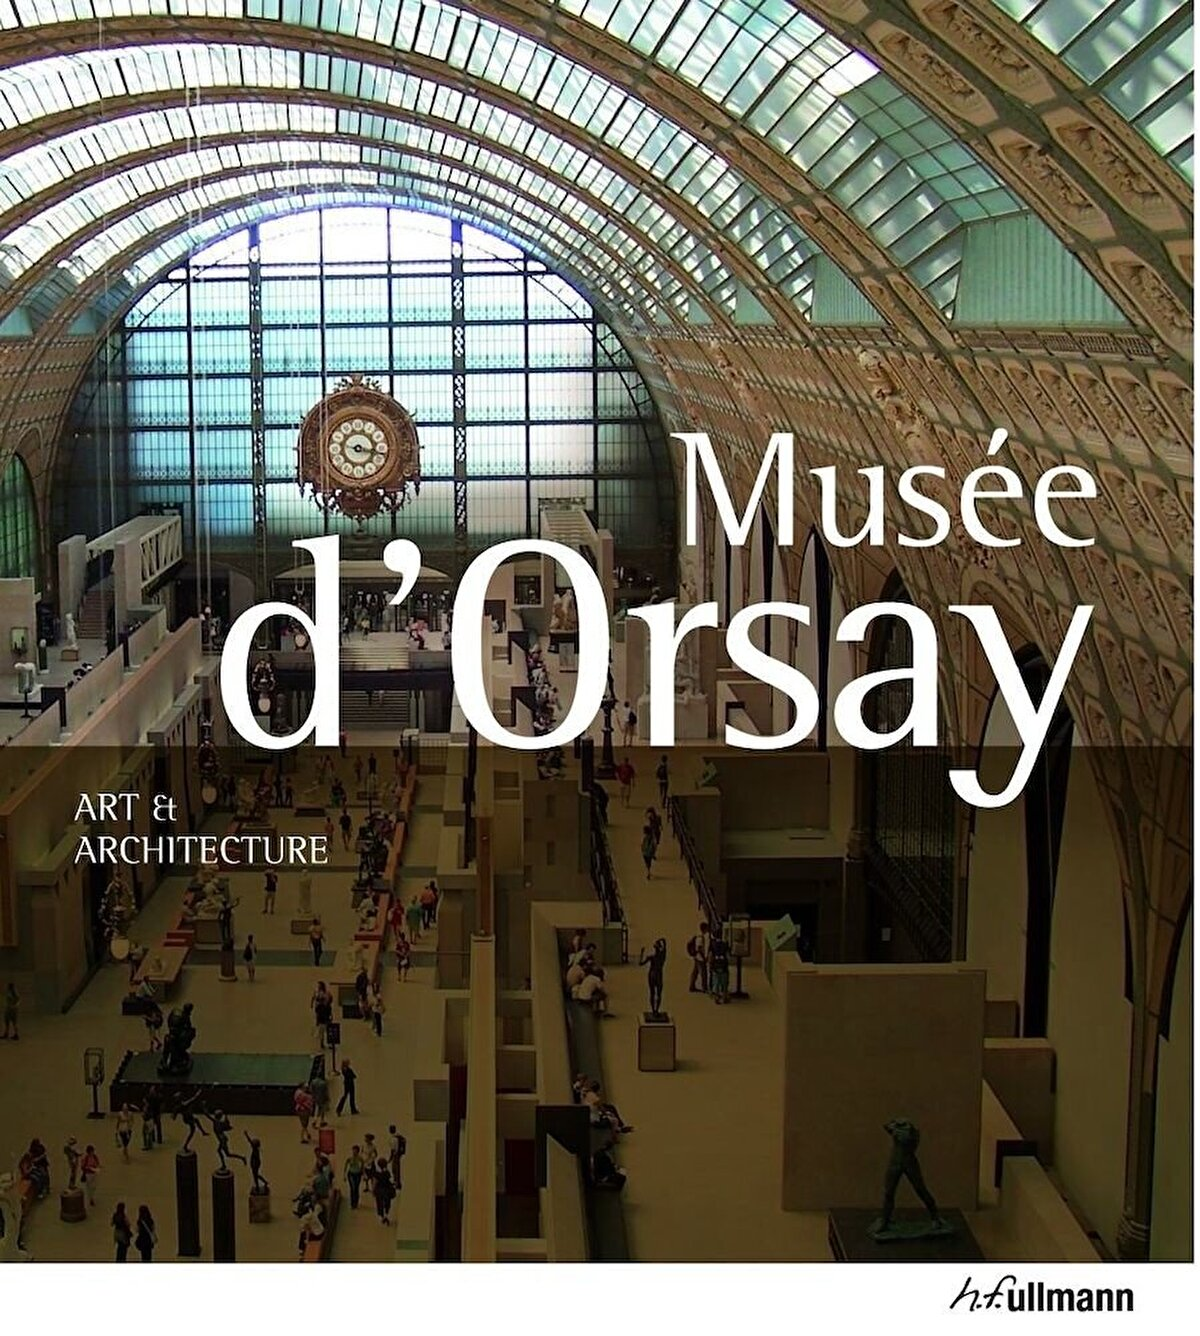 Art & Architecture: Musee d'Orsay